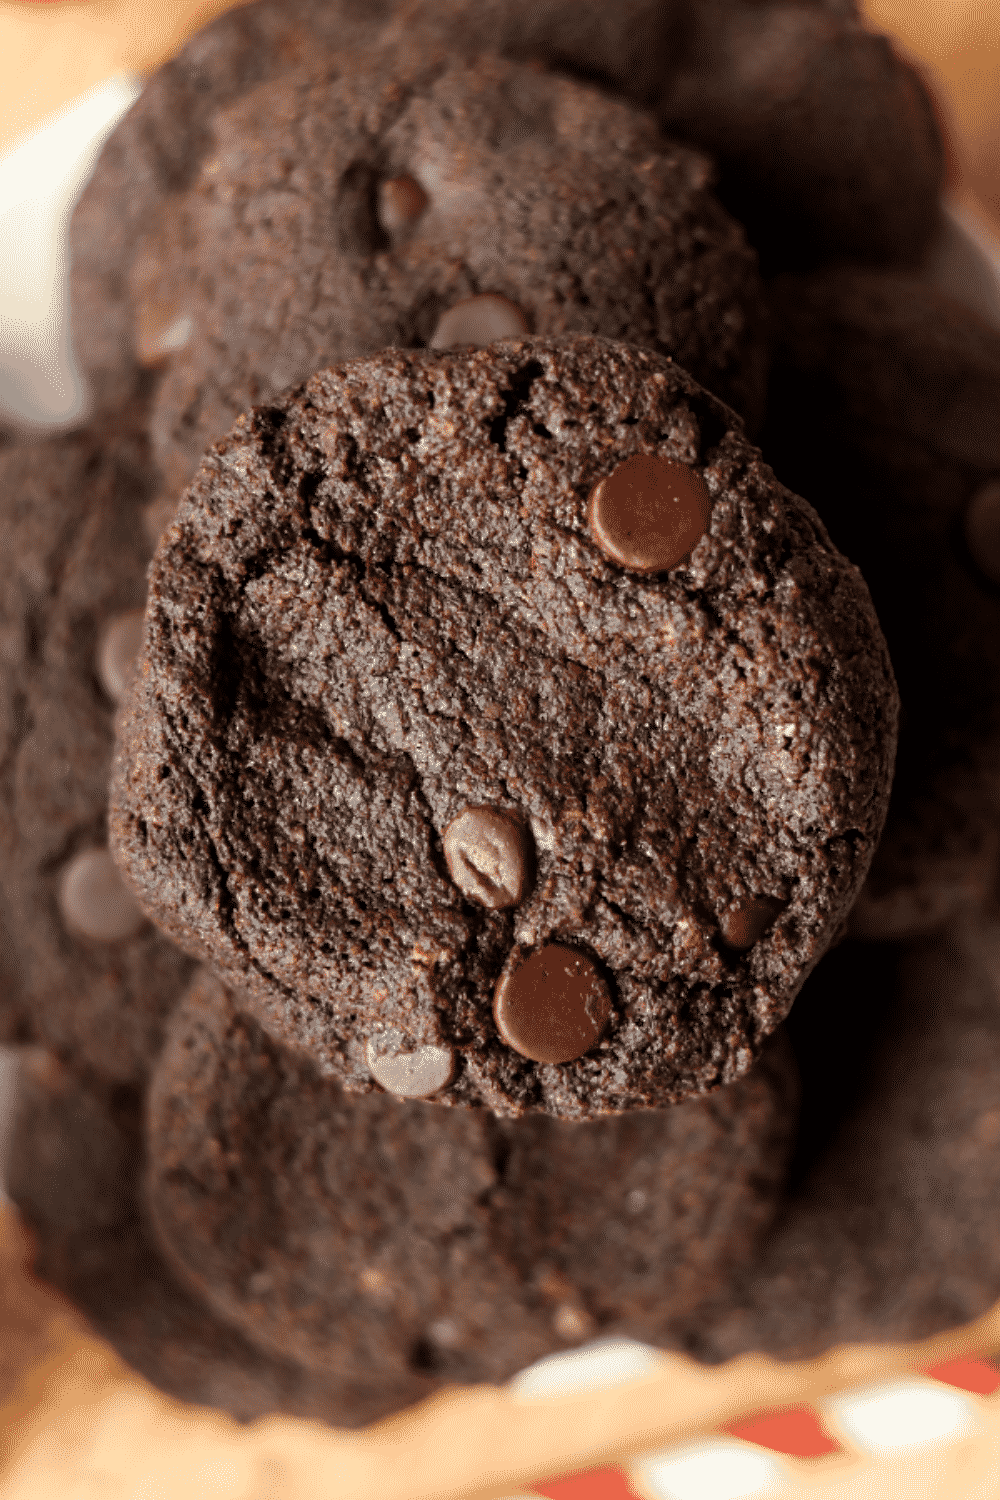 A stack of multiple chocolate cookies with chocolate chips.